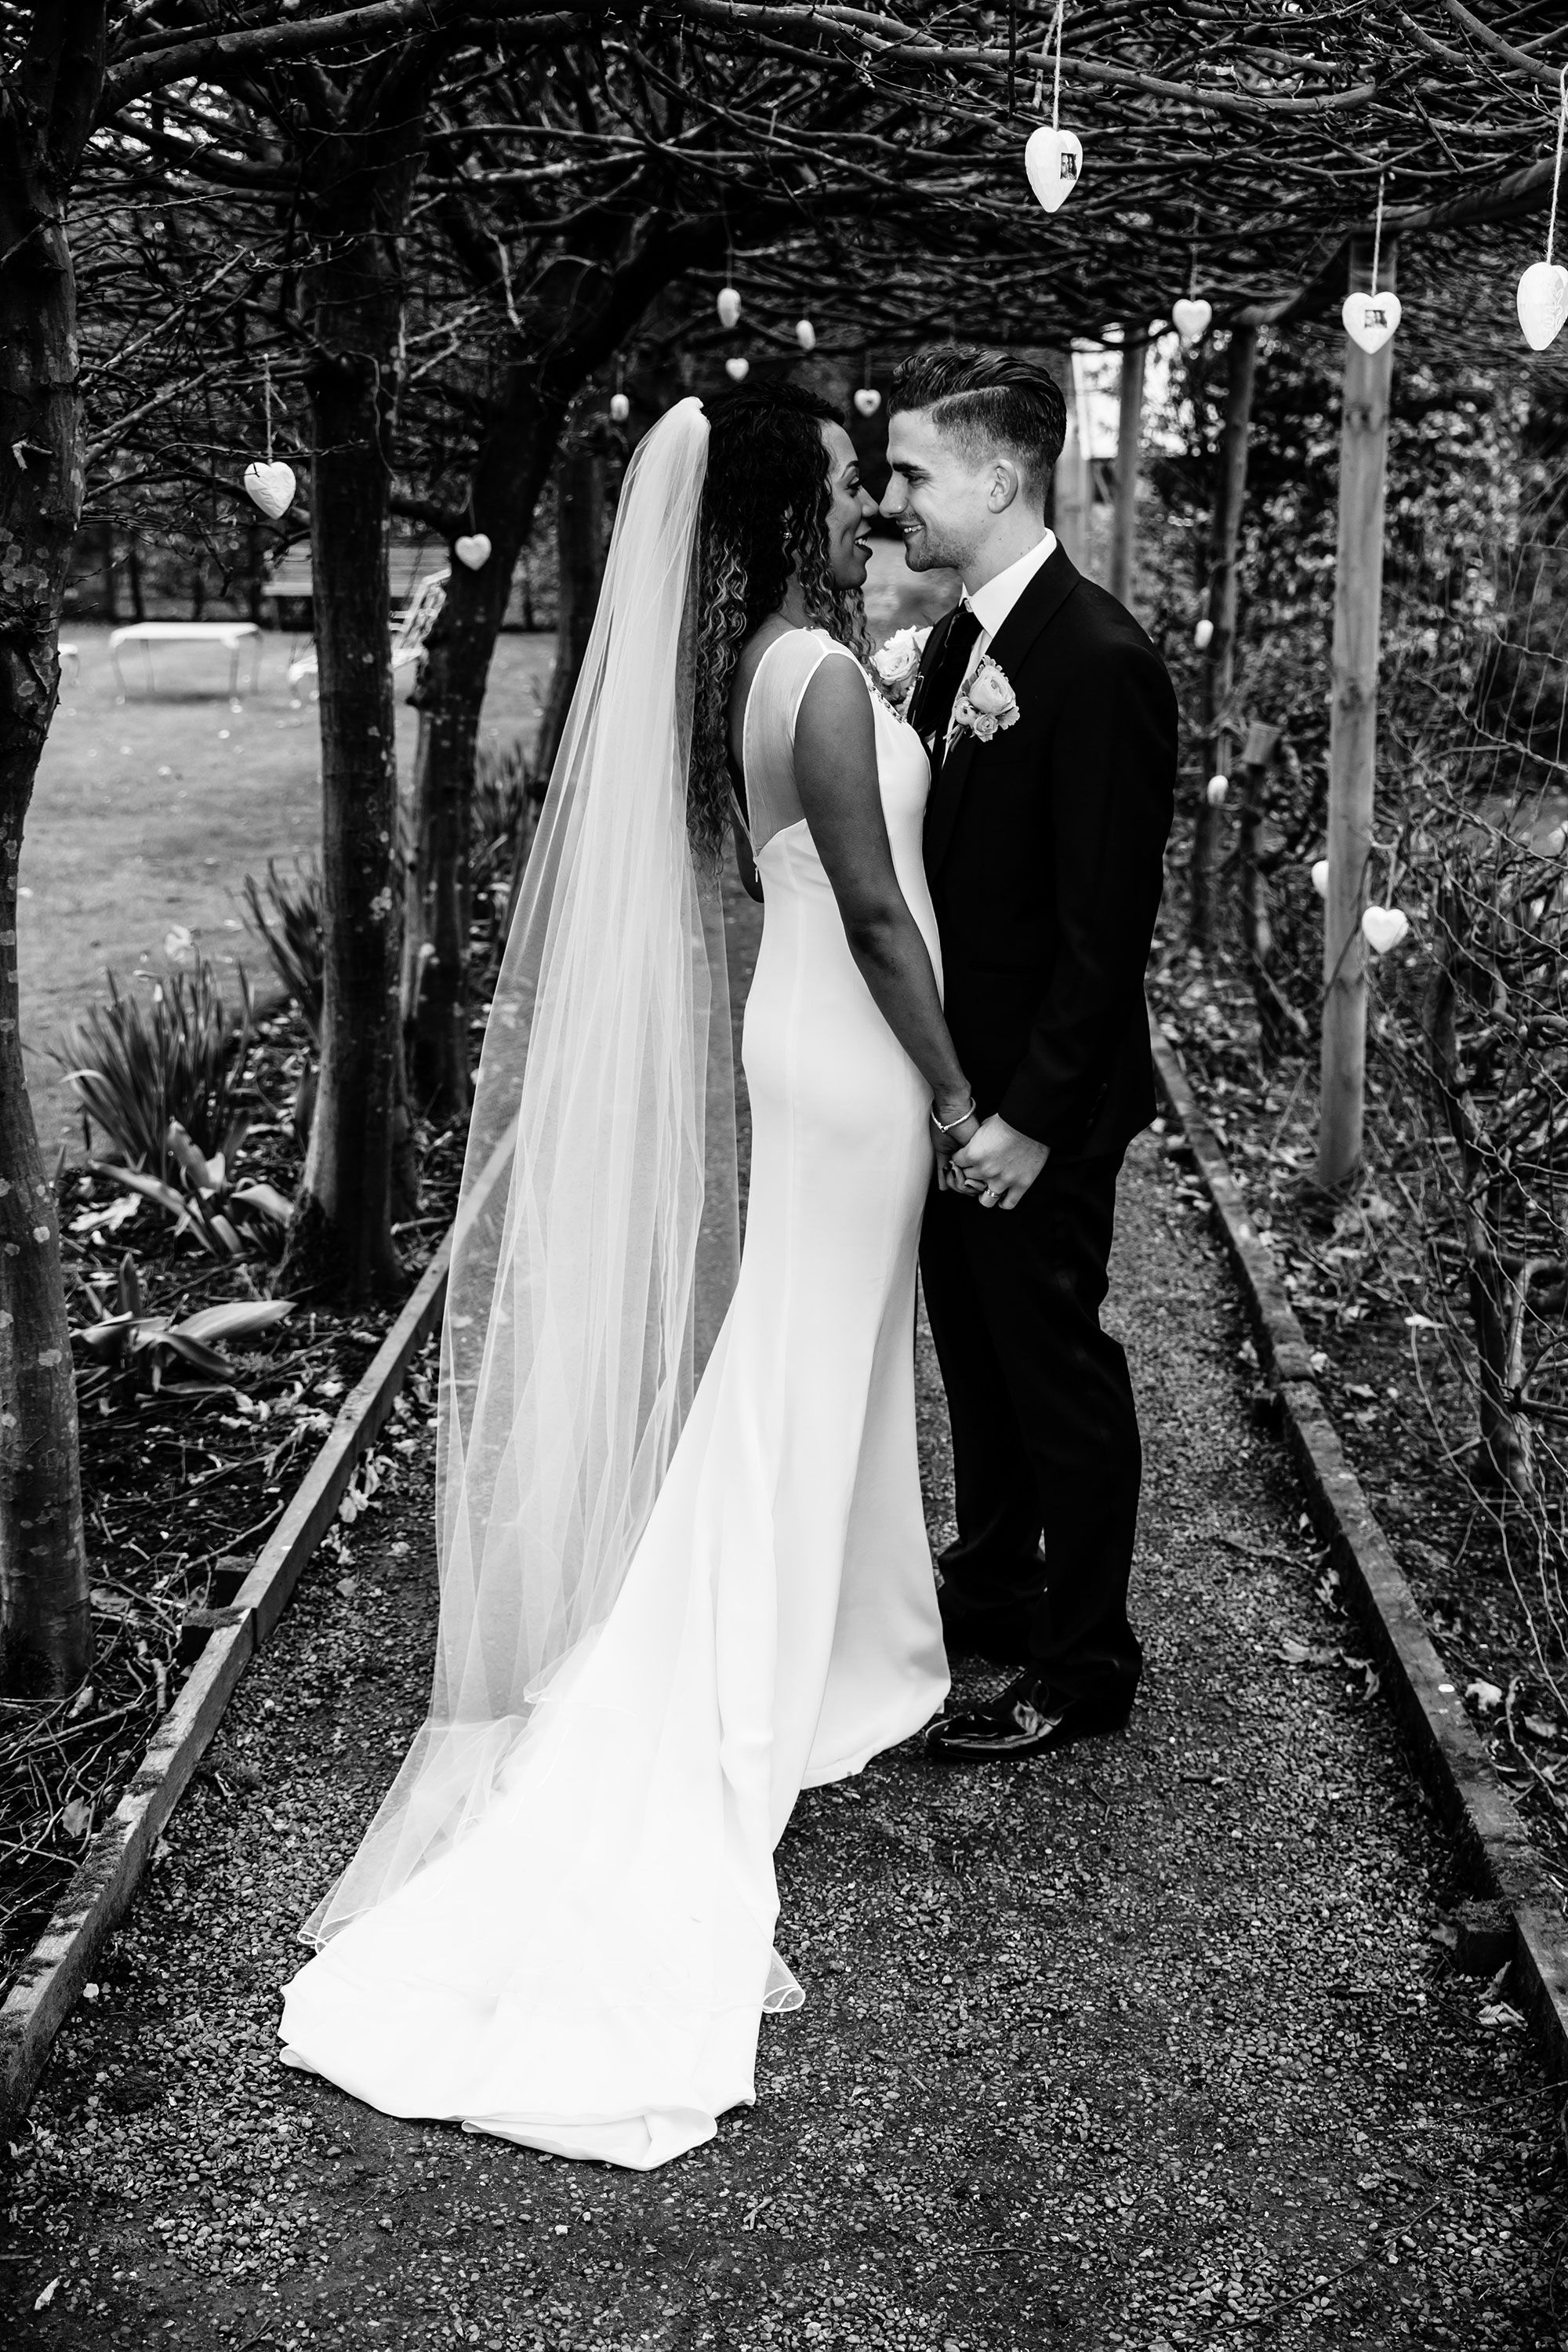 Wedding dress inspiration from real brides